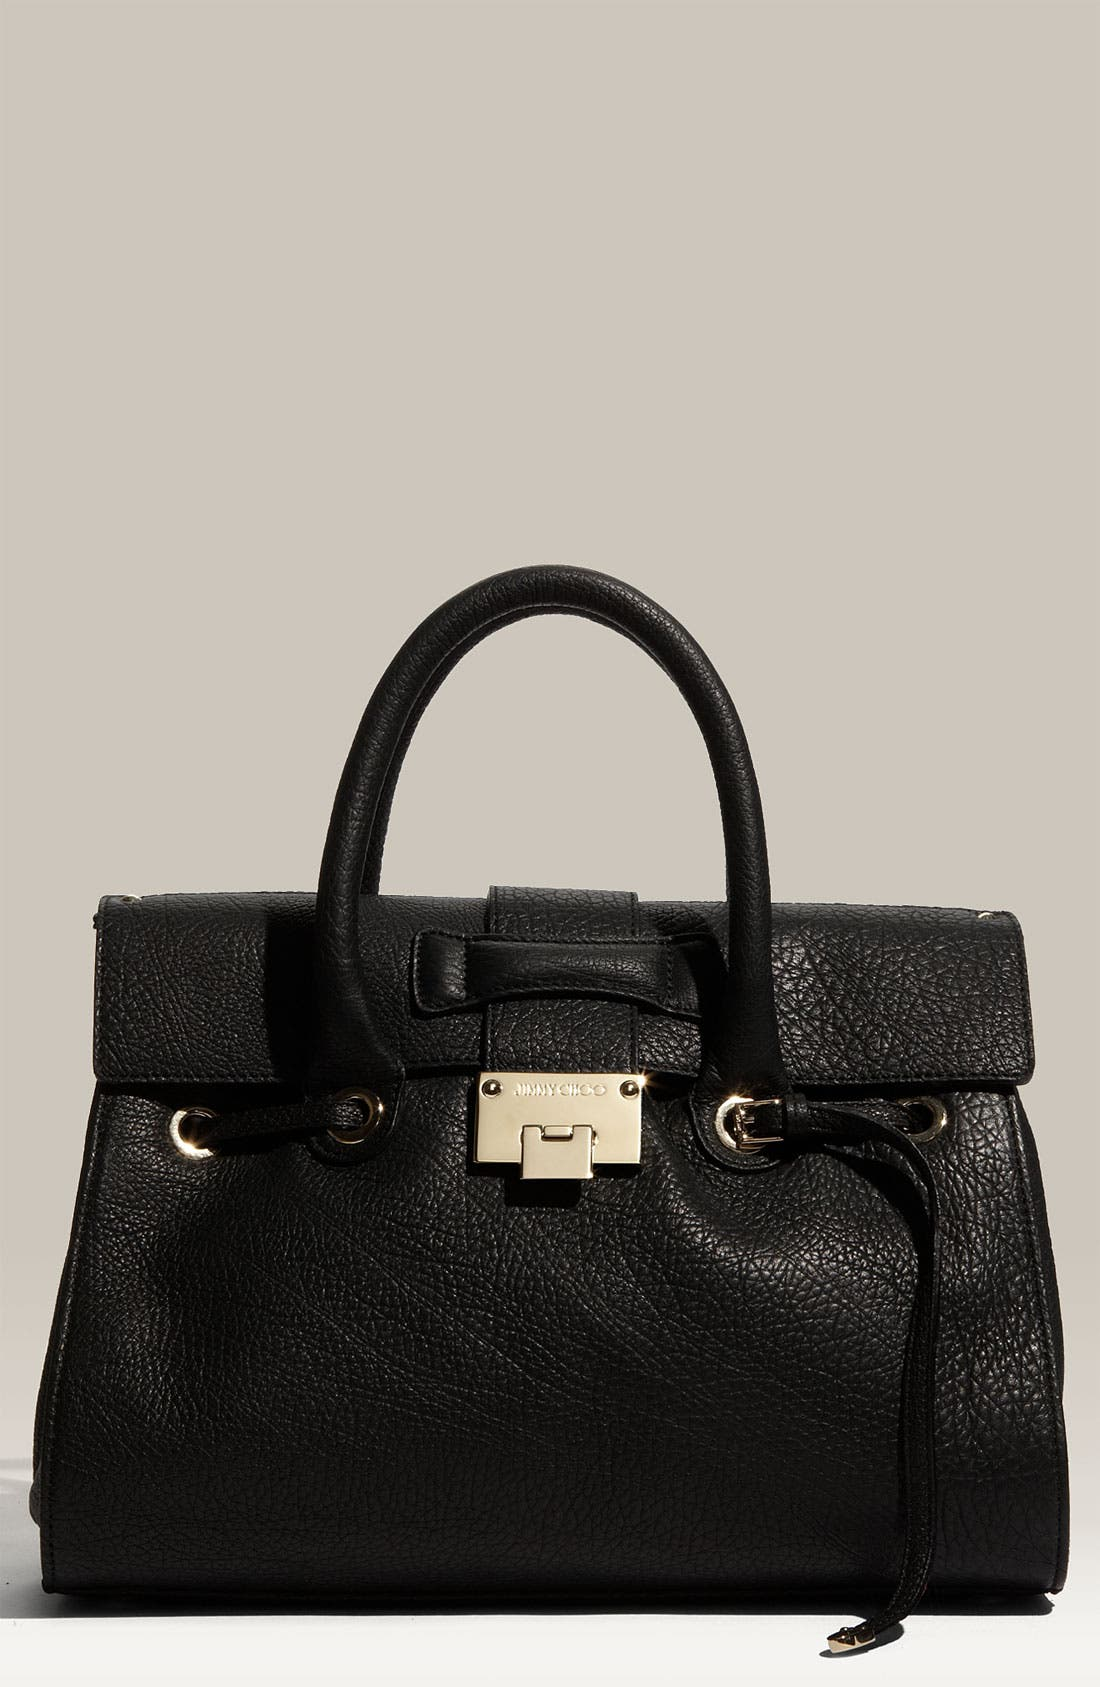 Alternate Image 1 Selected - Jimmy Choo 'Rosalie' Leather Satchel